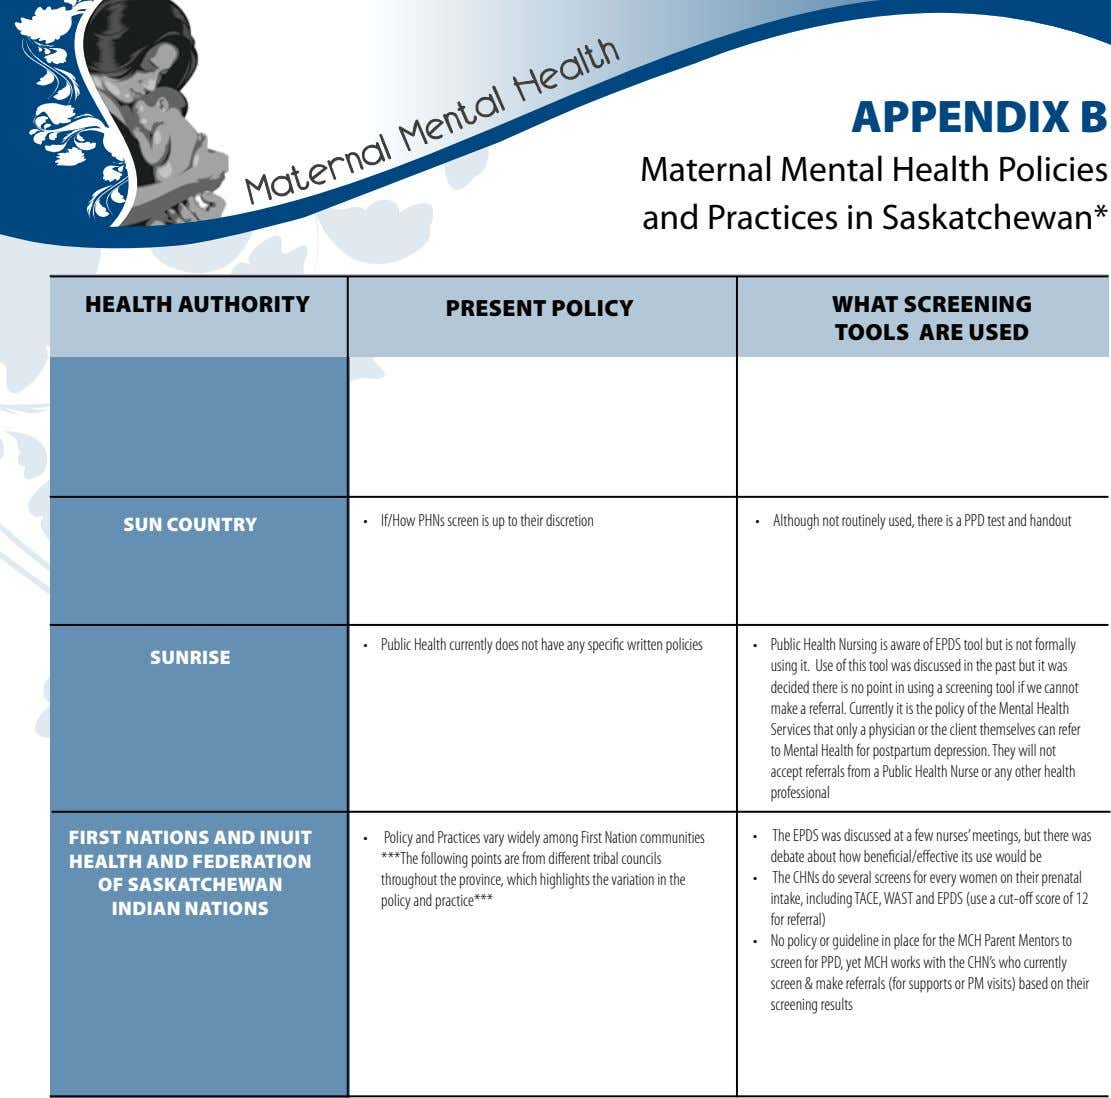 APPENDIX B Maternal Mental Health Policies and Practices in Saskatchewan* HEALTH AUTHORITY PRESENT POLICY WHAT